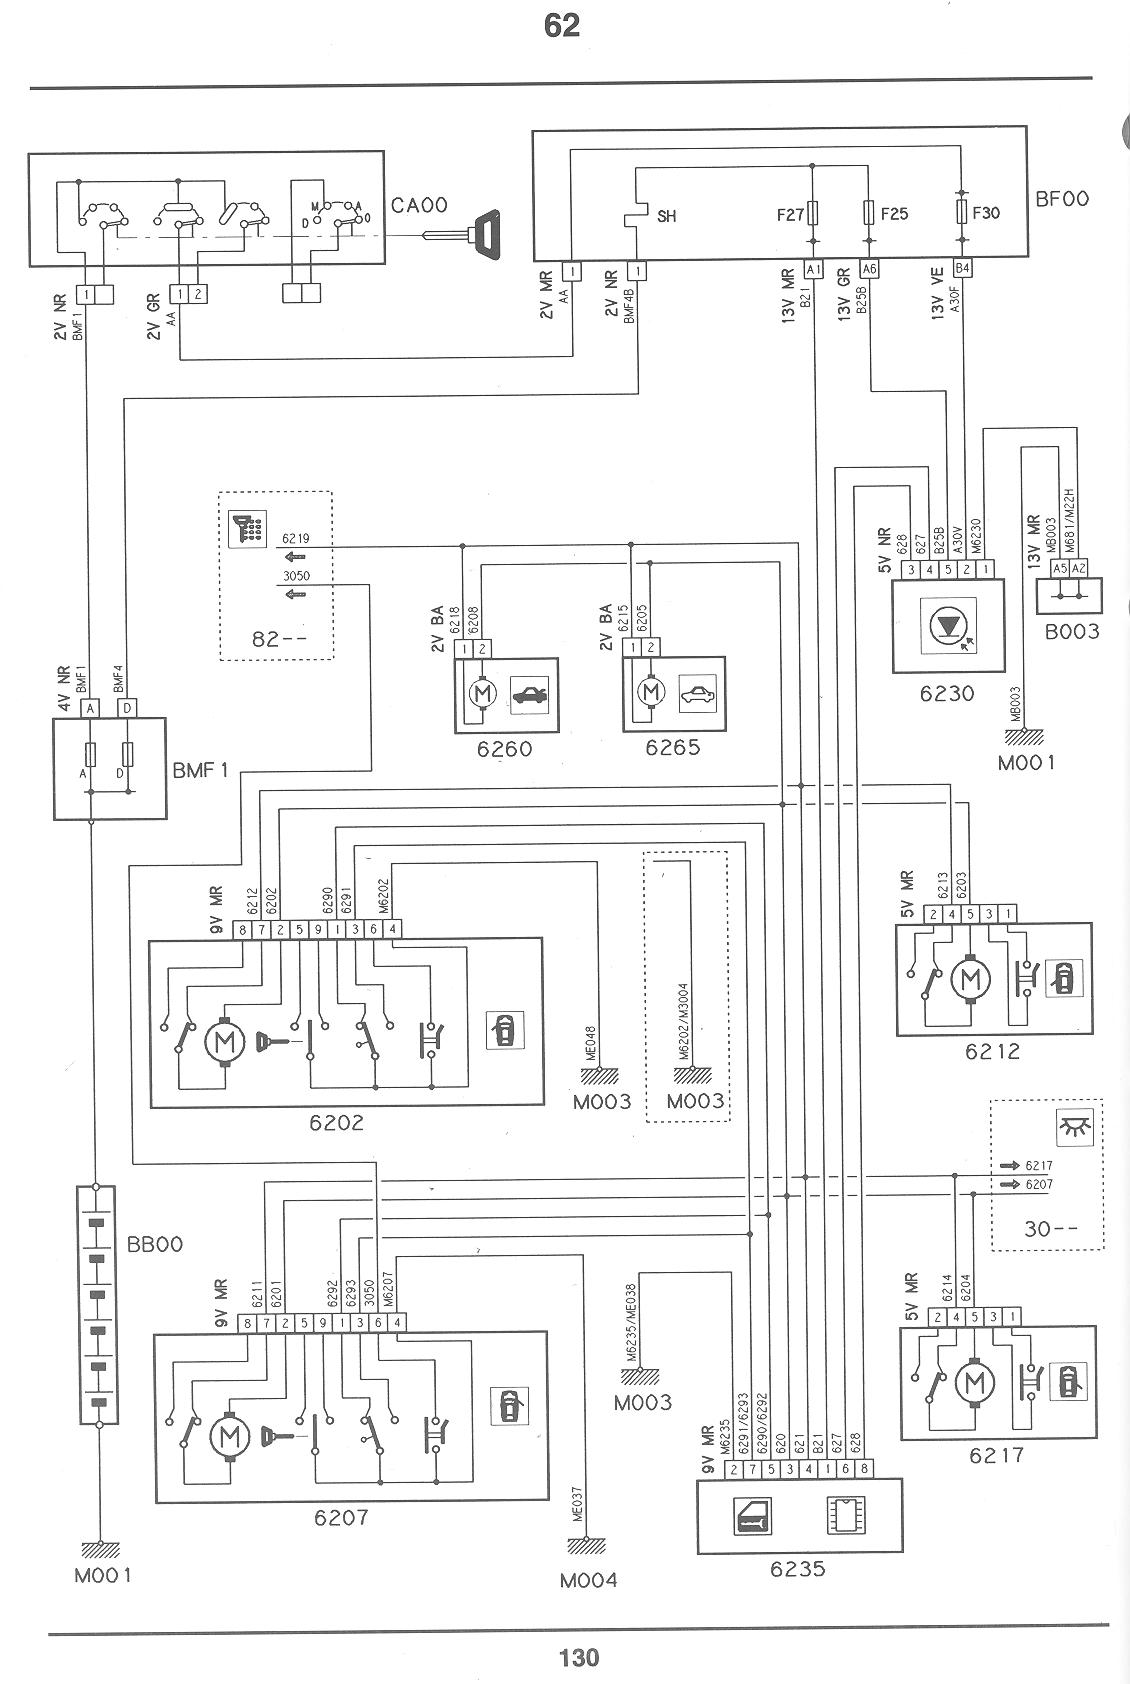 [WRG-9303] Citroen C4 2005 Wiring Diagram